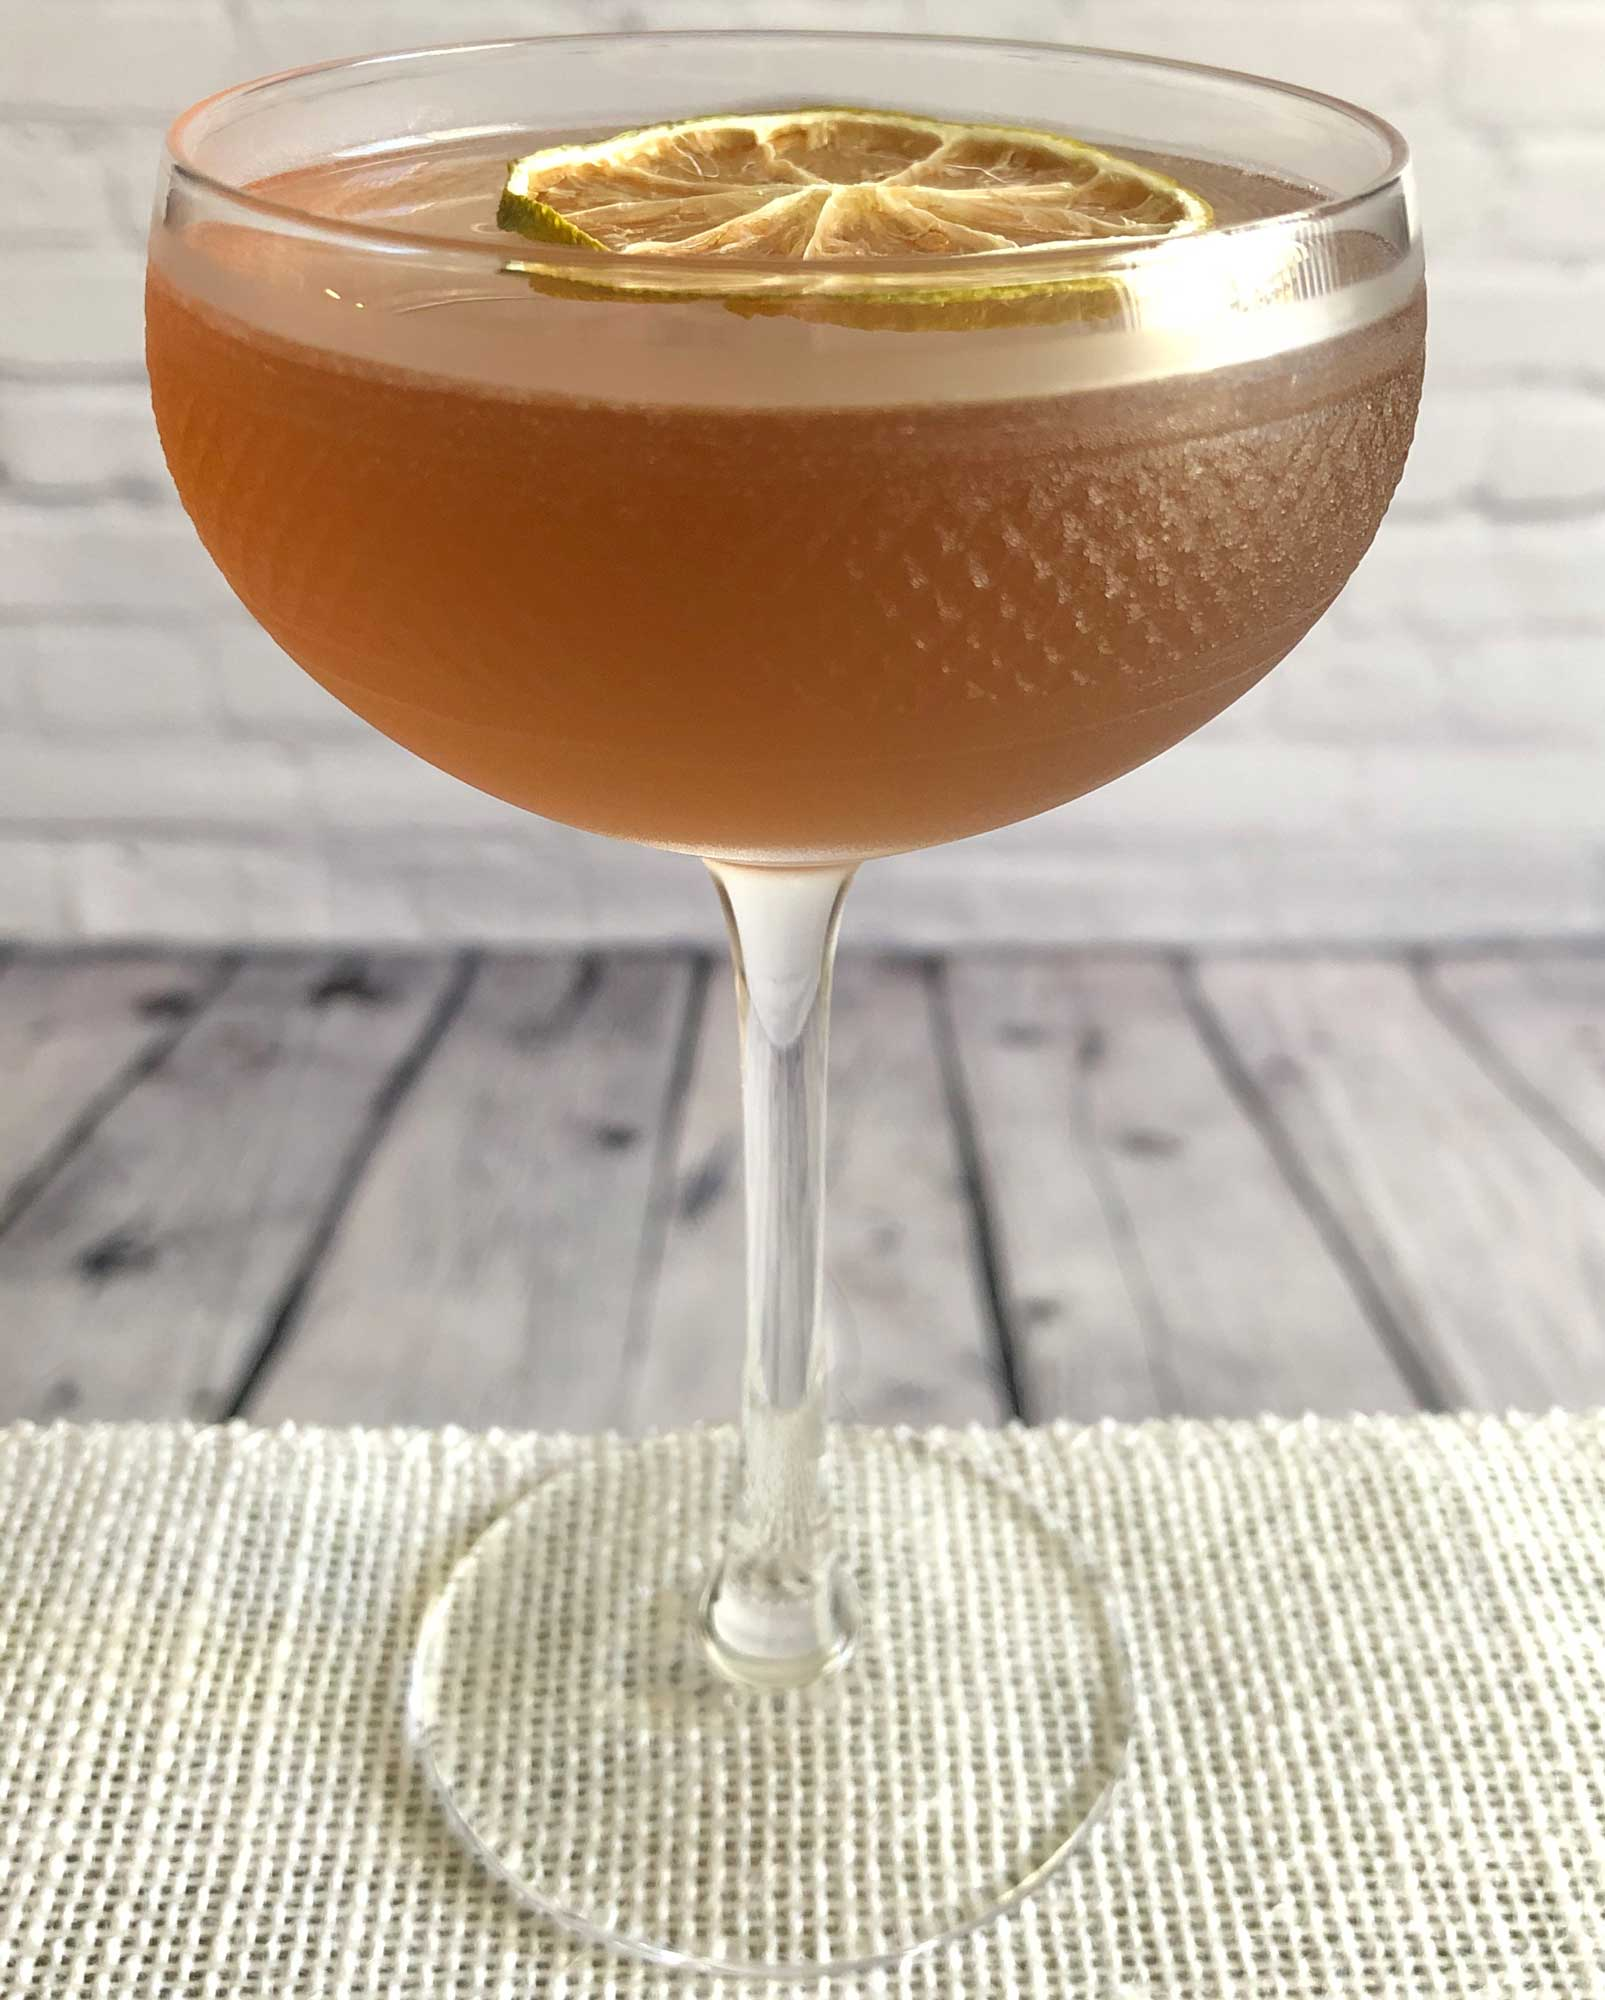 An example of the Daytime Daiquiri, the mixed drink (cocktail), by Jen Davis, The Eddy, Providence, Rhode Island, featuring Dolin Rouge Vermouth de Chambéry, lime juice, simple syrup, and light rum; photo by Lee Edwards